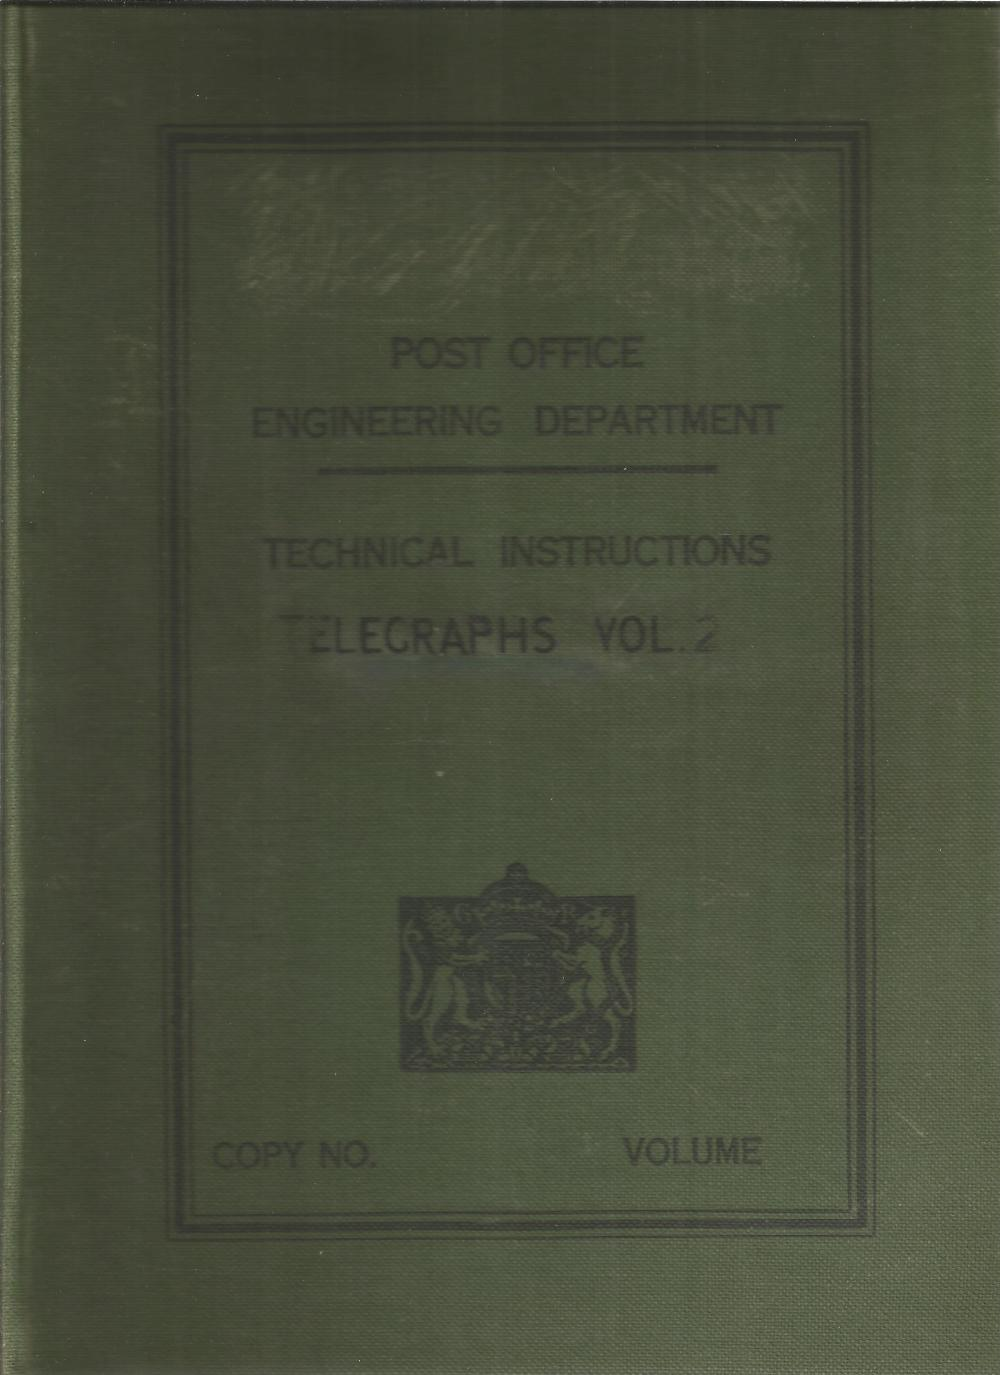 Post Office Engineering Department Technical Instructions Telegraphs Vol 2. Unsigned large reference